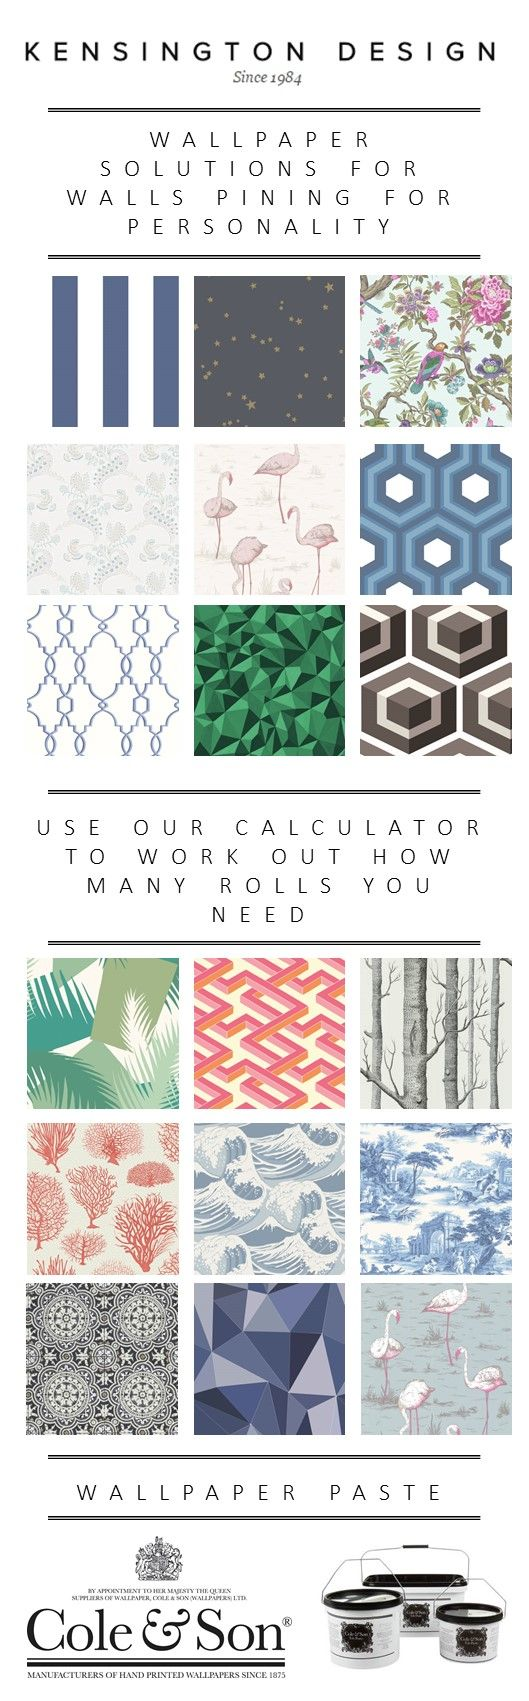 Design: Explore our Interactive Wallpaper Solutions For Walls Pining For Personality - Kensington Design